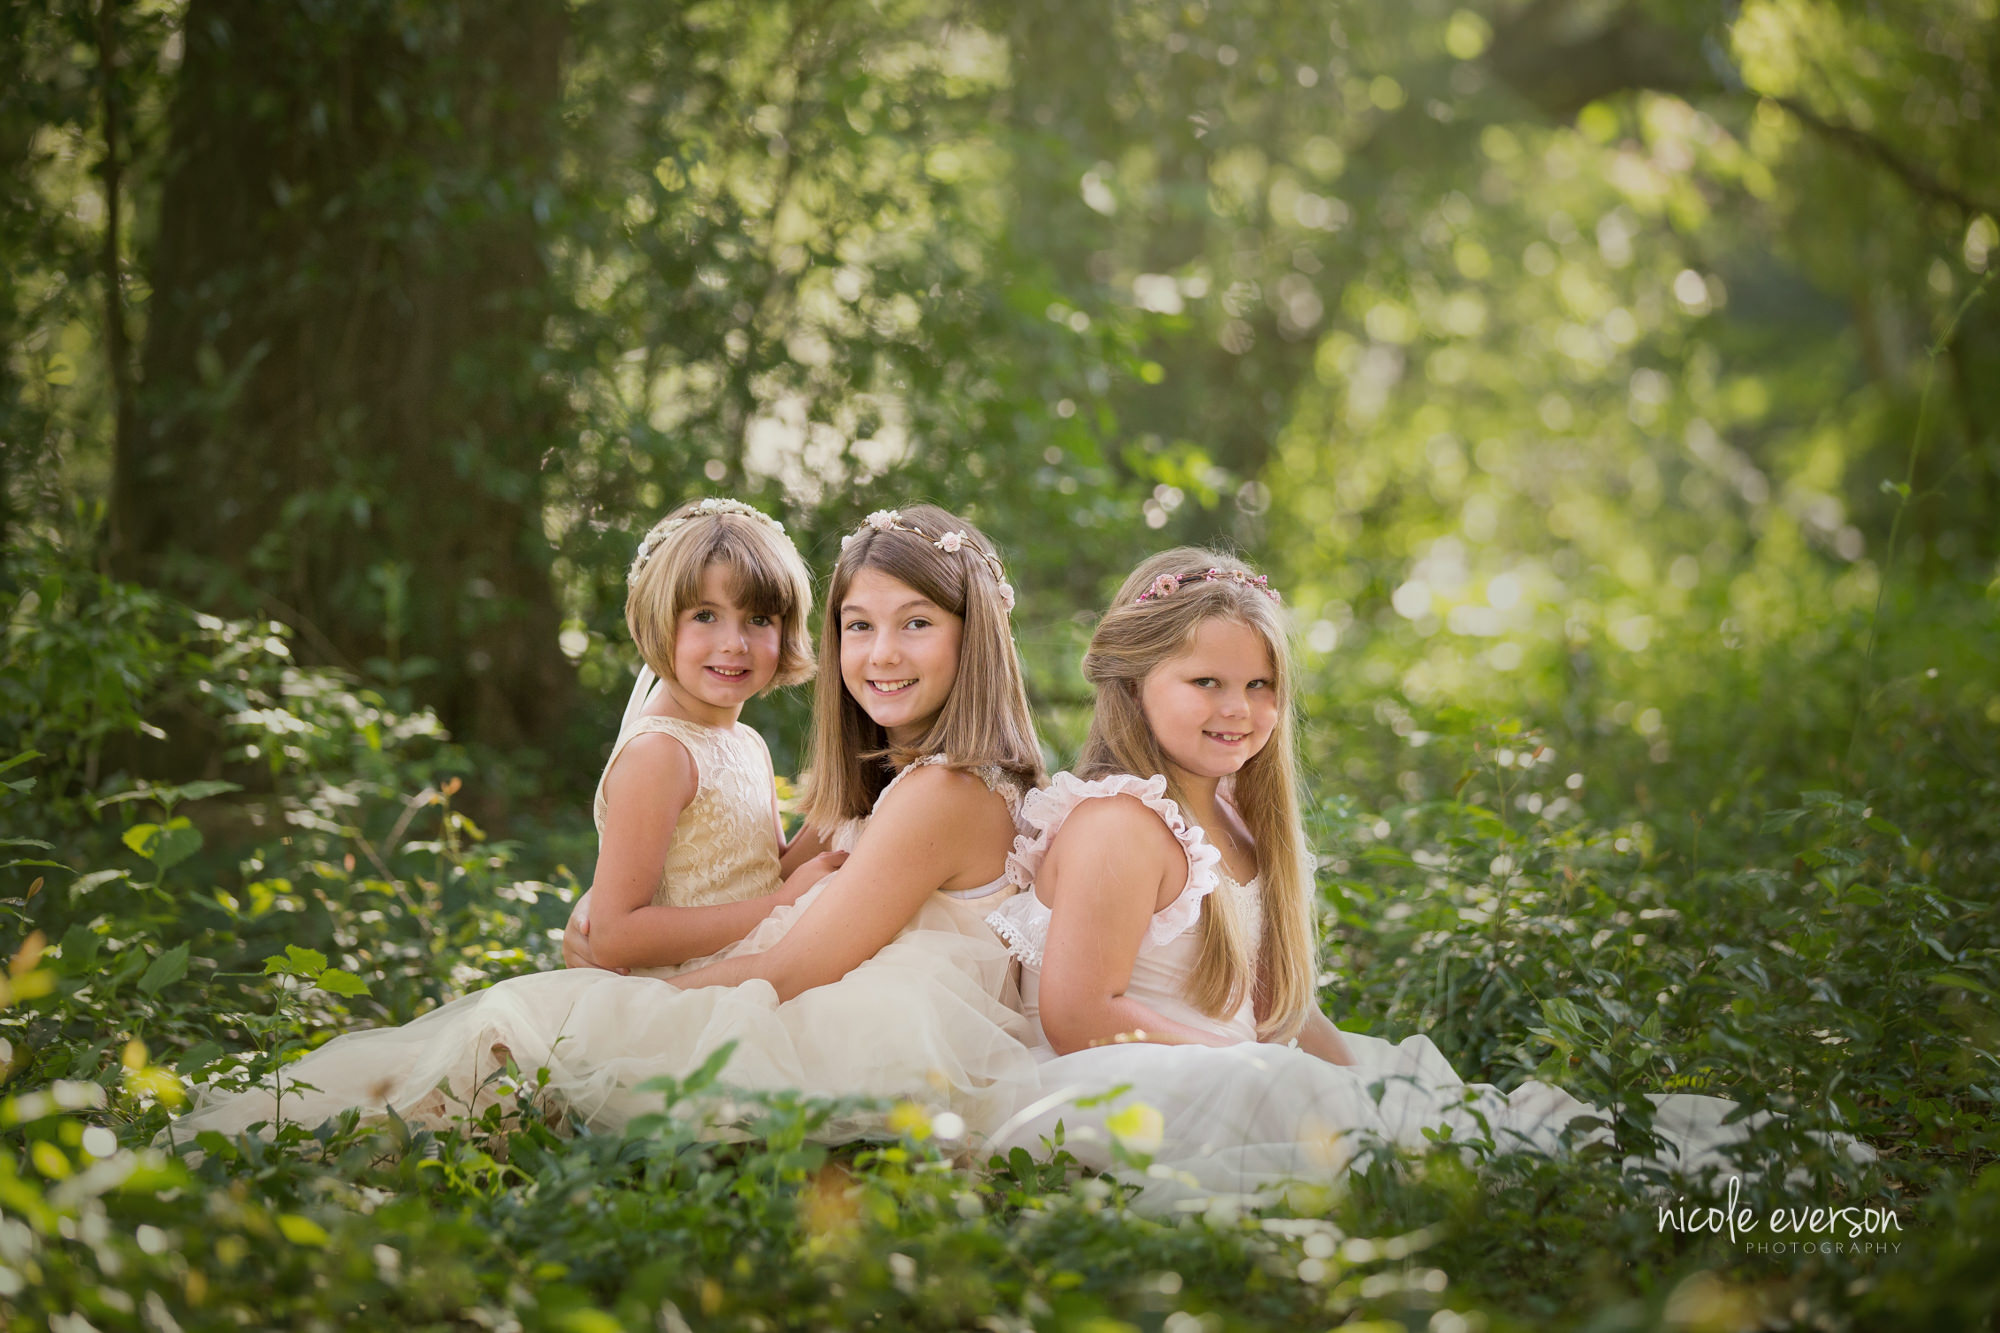 chipley single girls Therapyworld is a child therapy daycare, or in the community we pride ourselves on high quality, individualized speech therapy services to meet your needs.